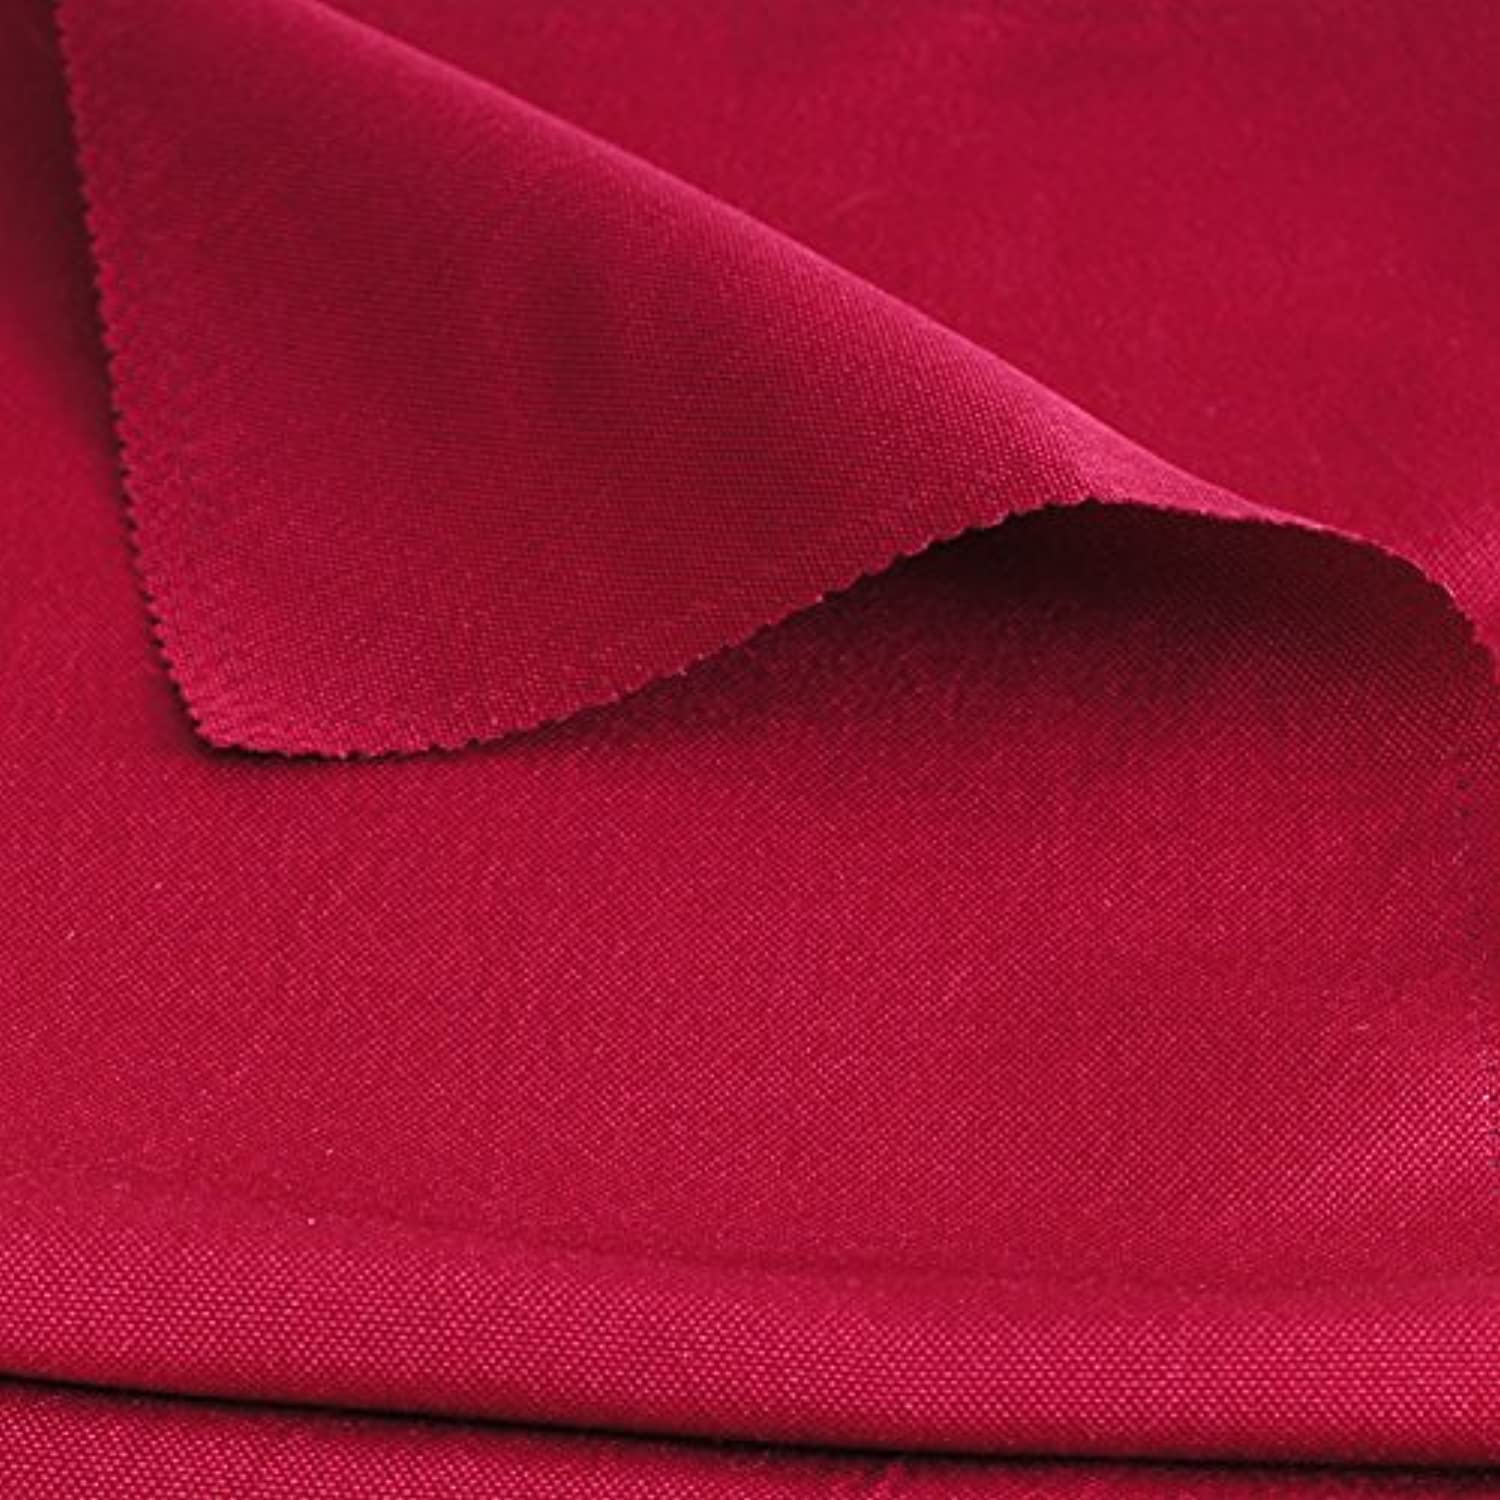 ZHFC The wedding party red cloth meeting room Taiwan color gift skirt round table cloth gaib napkin 4848 1 block,gules,280280cm